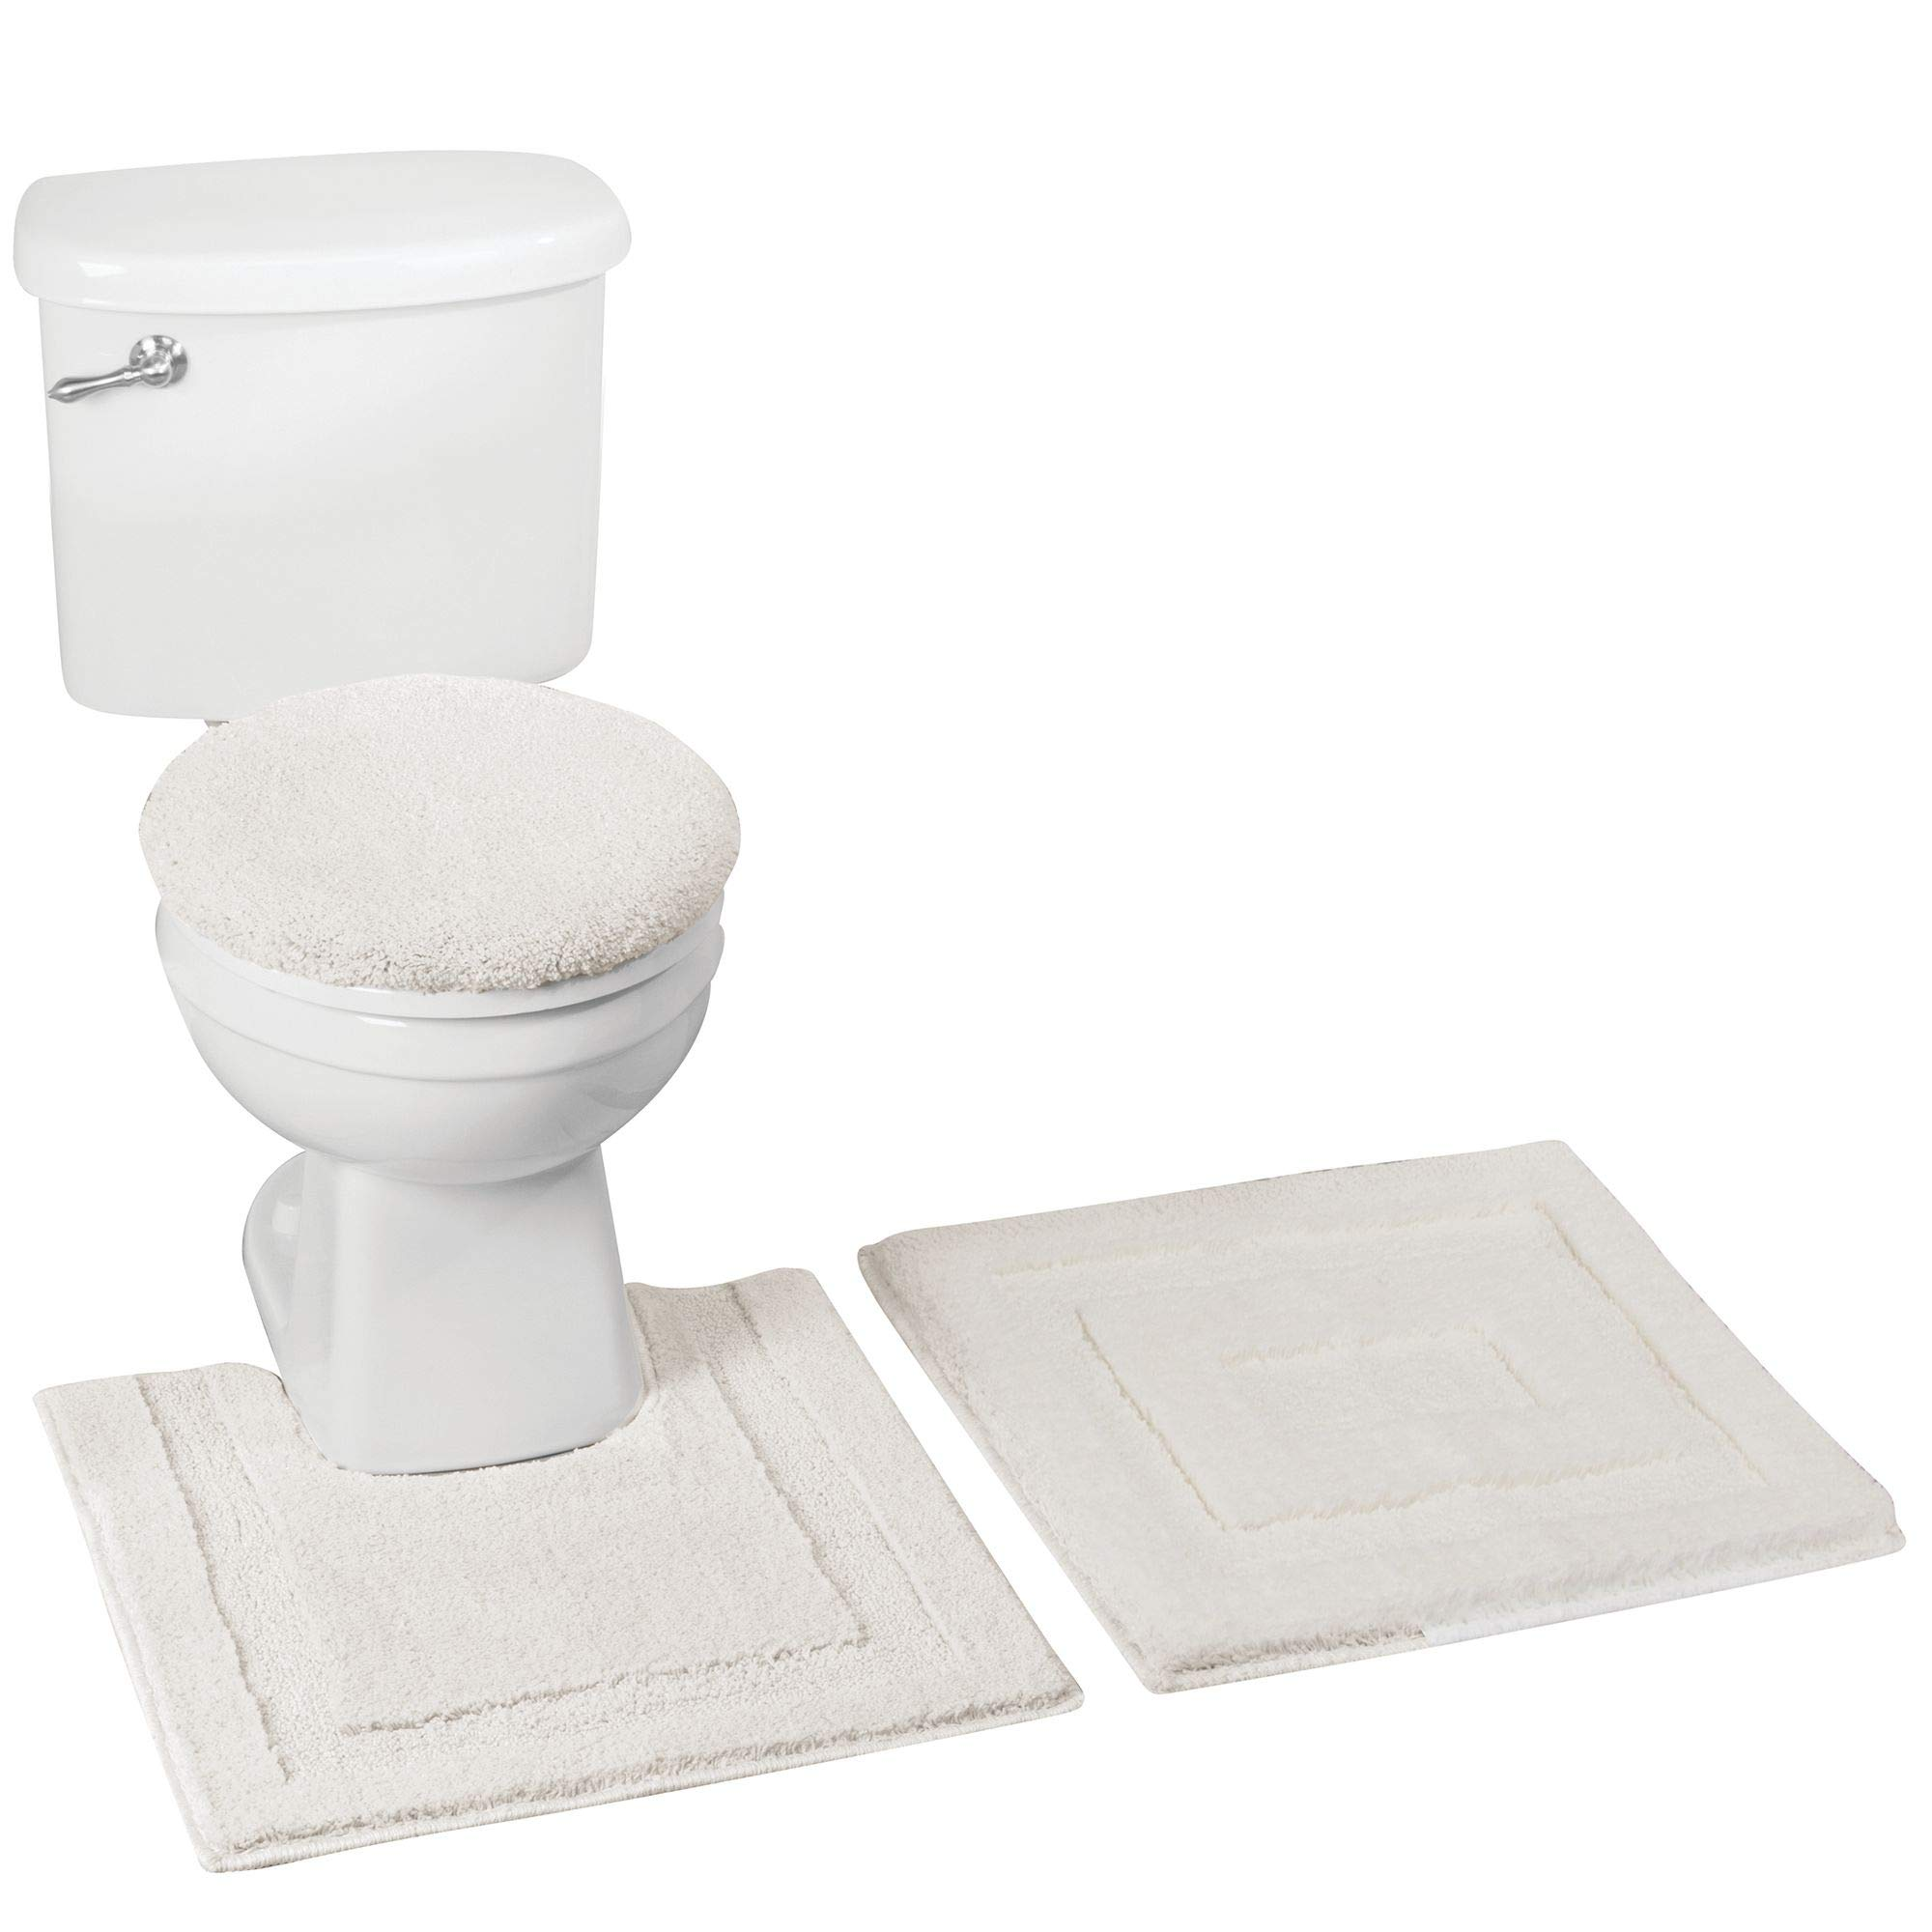 mDesign mDesign Soft Microfiber Polyester Bathroom Spa Rug Set - Water Absorbent, Machine Washable � Includes Plush Non-Slip Rectangular Accent Rug, Contour Mat, Toilet Lid Cover - Set of 3, Ivory